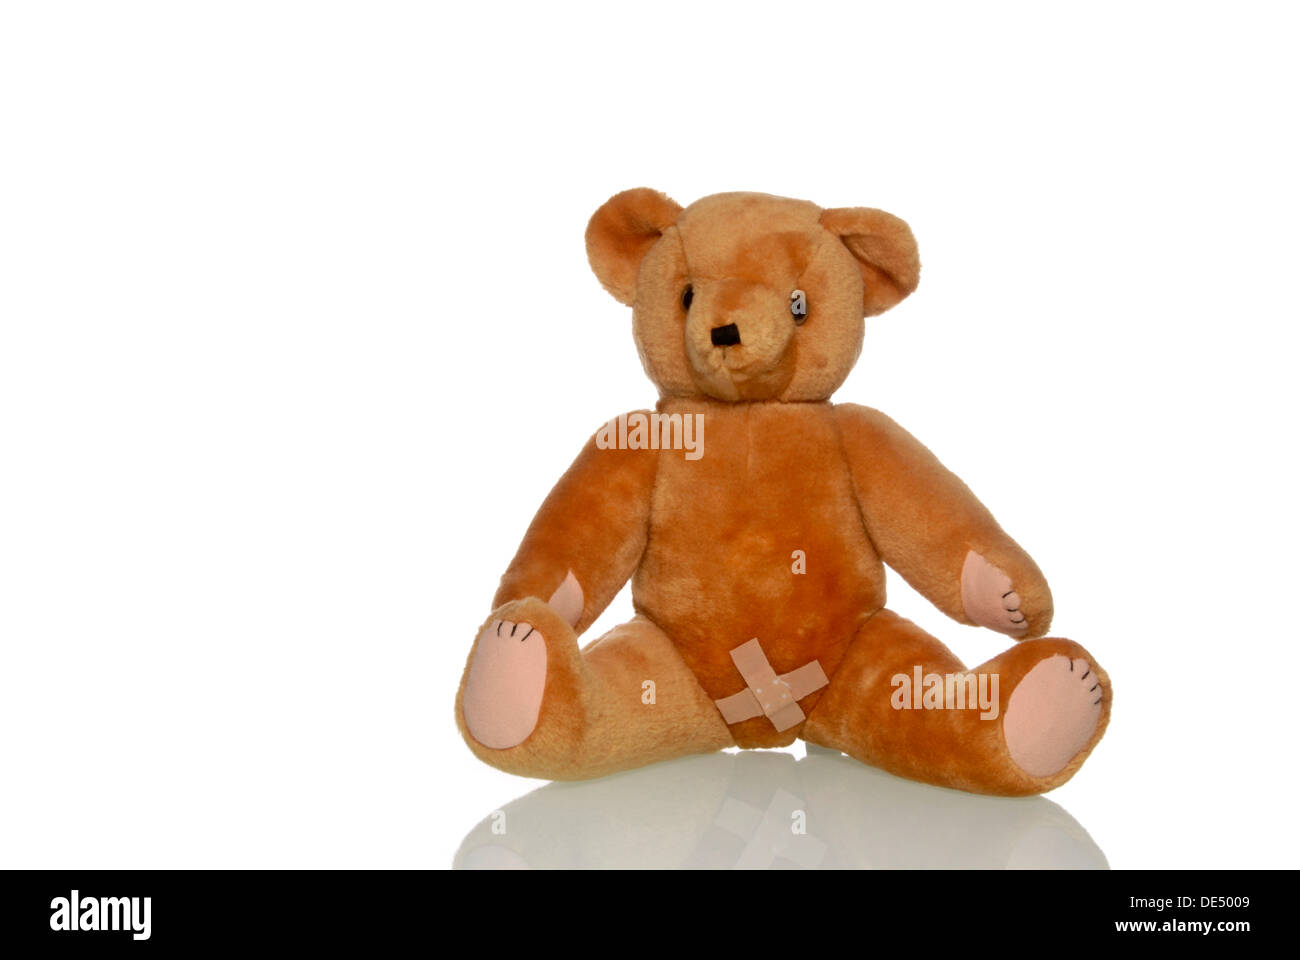 Sad teddy bear with a plaster in the genital area, symbolic image for abuse - Stock Image